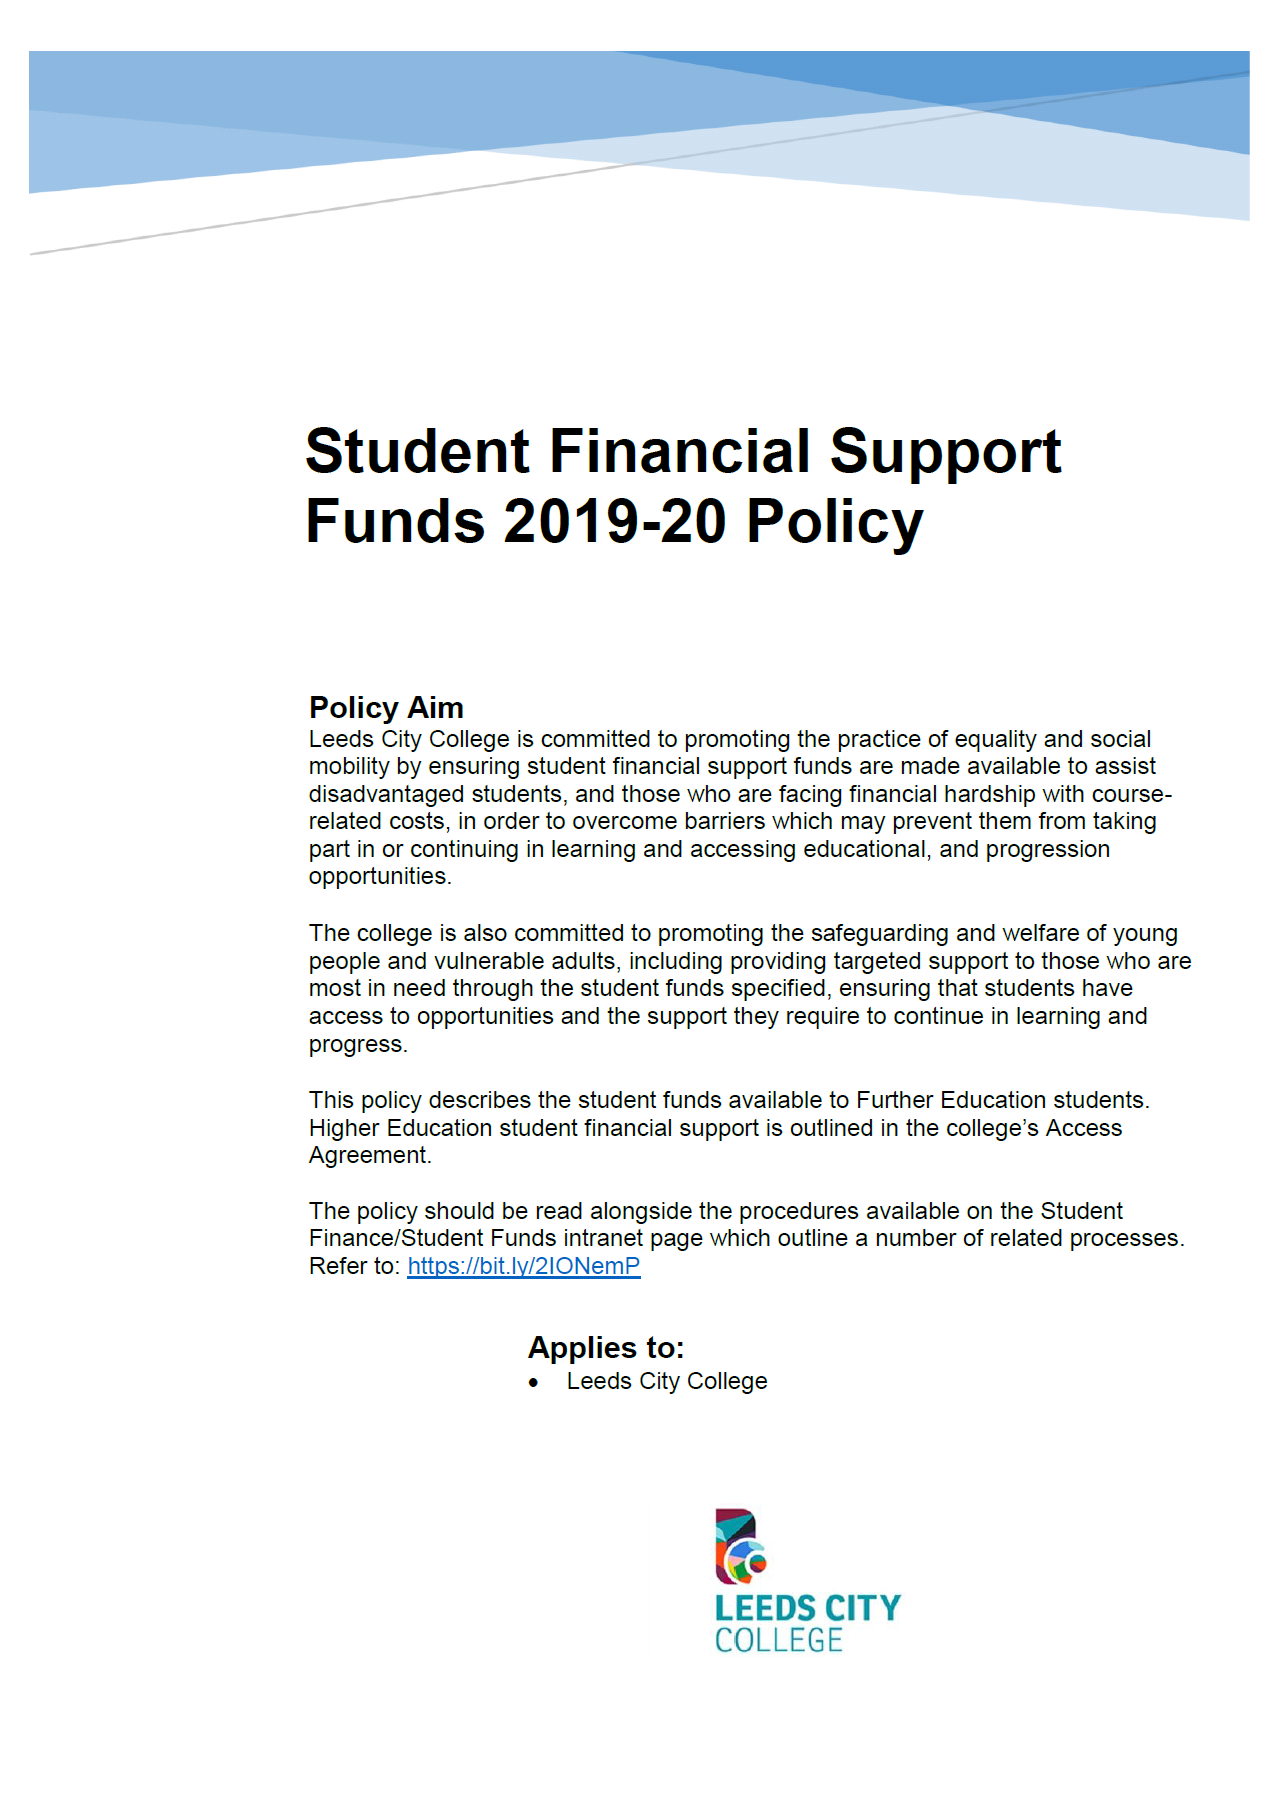 Student Financial Support Policy cover